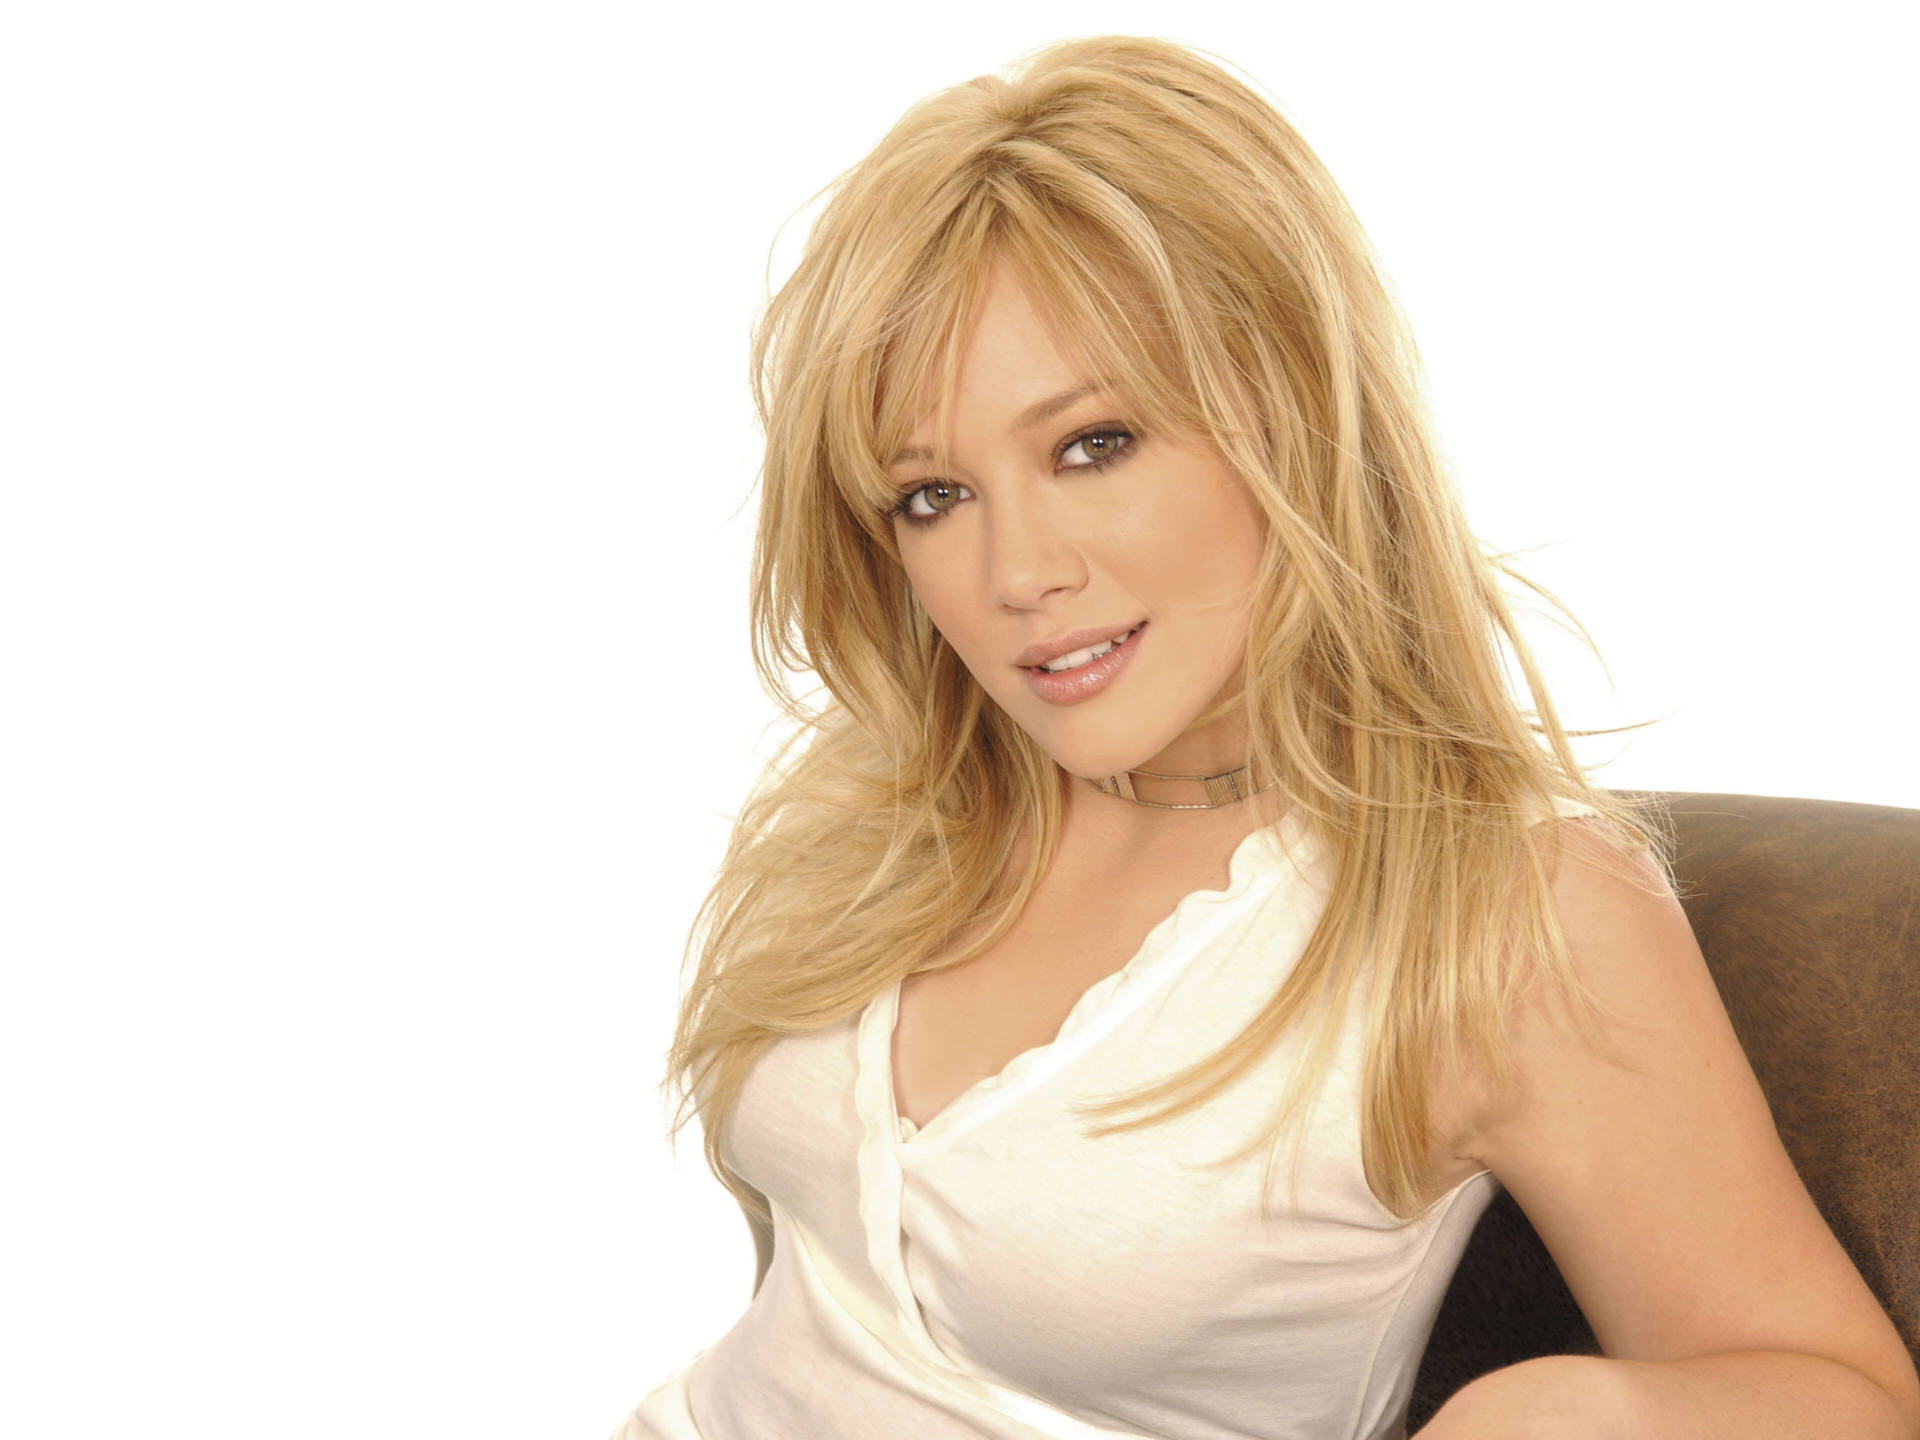 Hot And Sexy Hilary Duff Hd Wallpapers 2015 - All Hd -2750